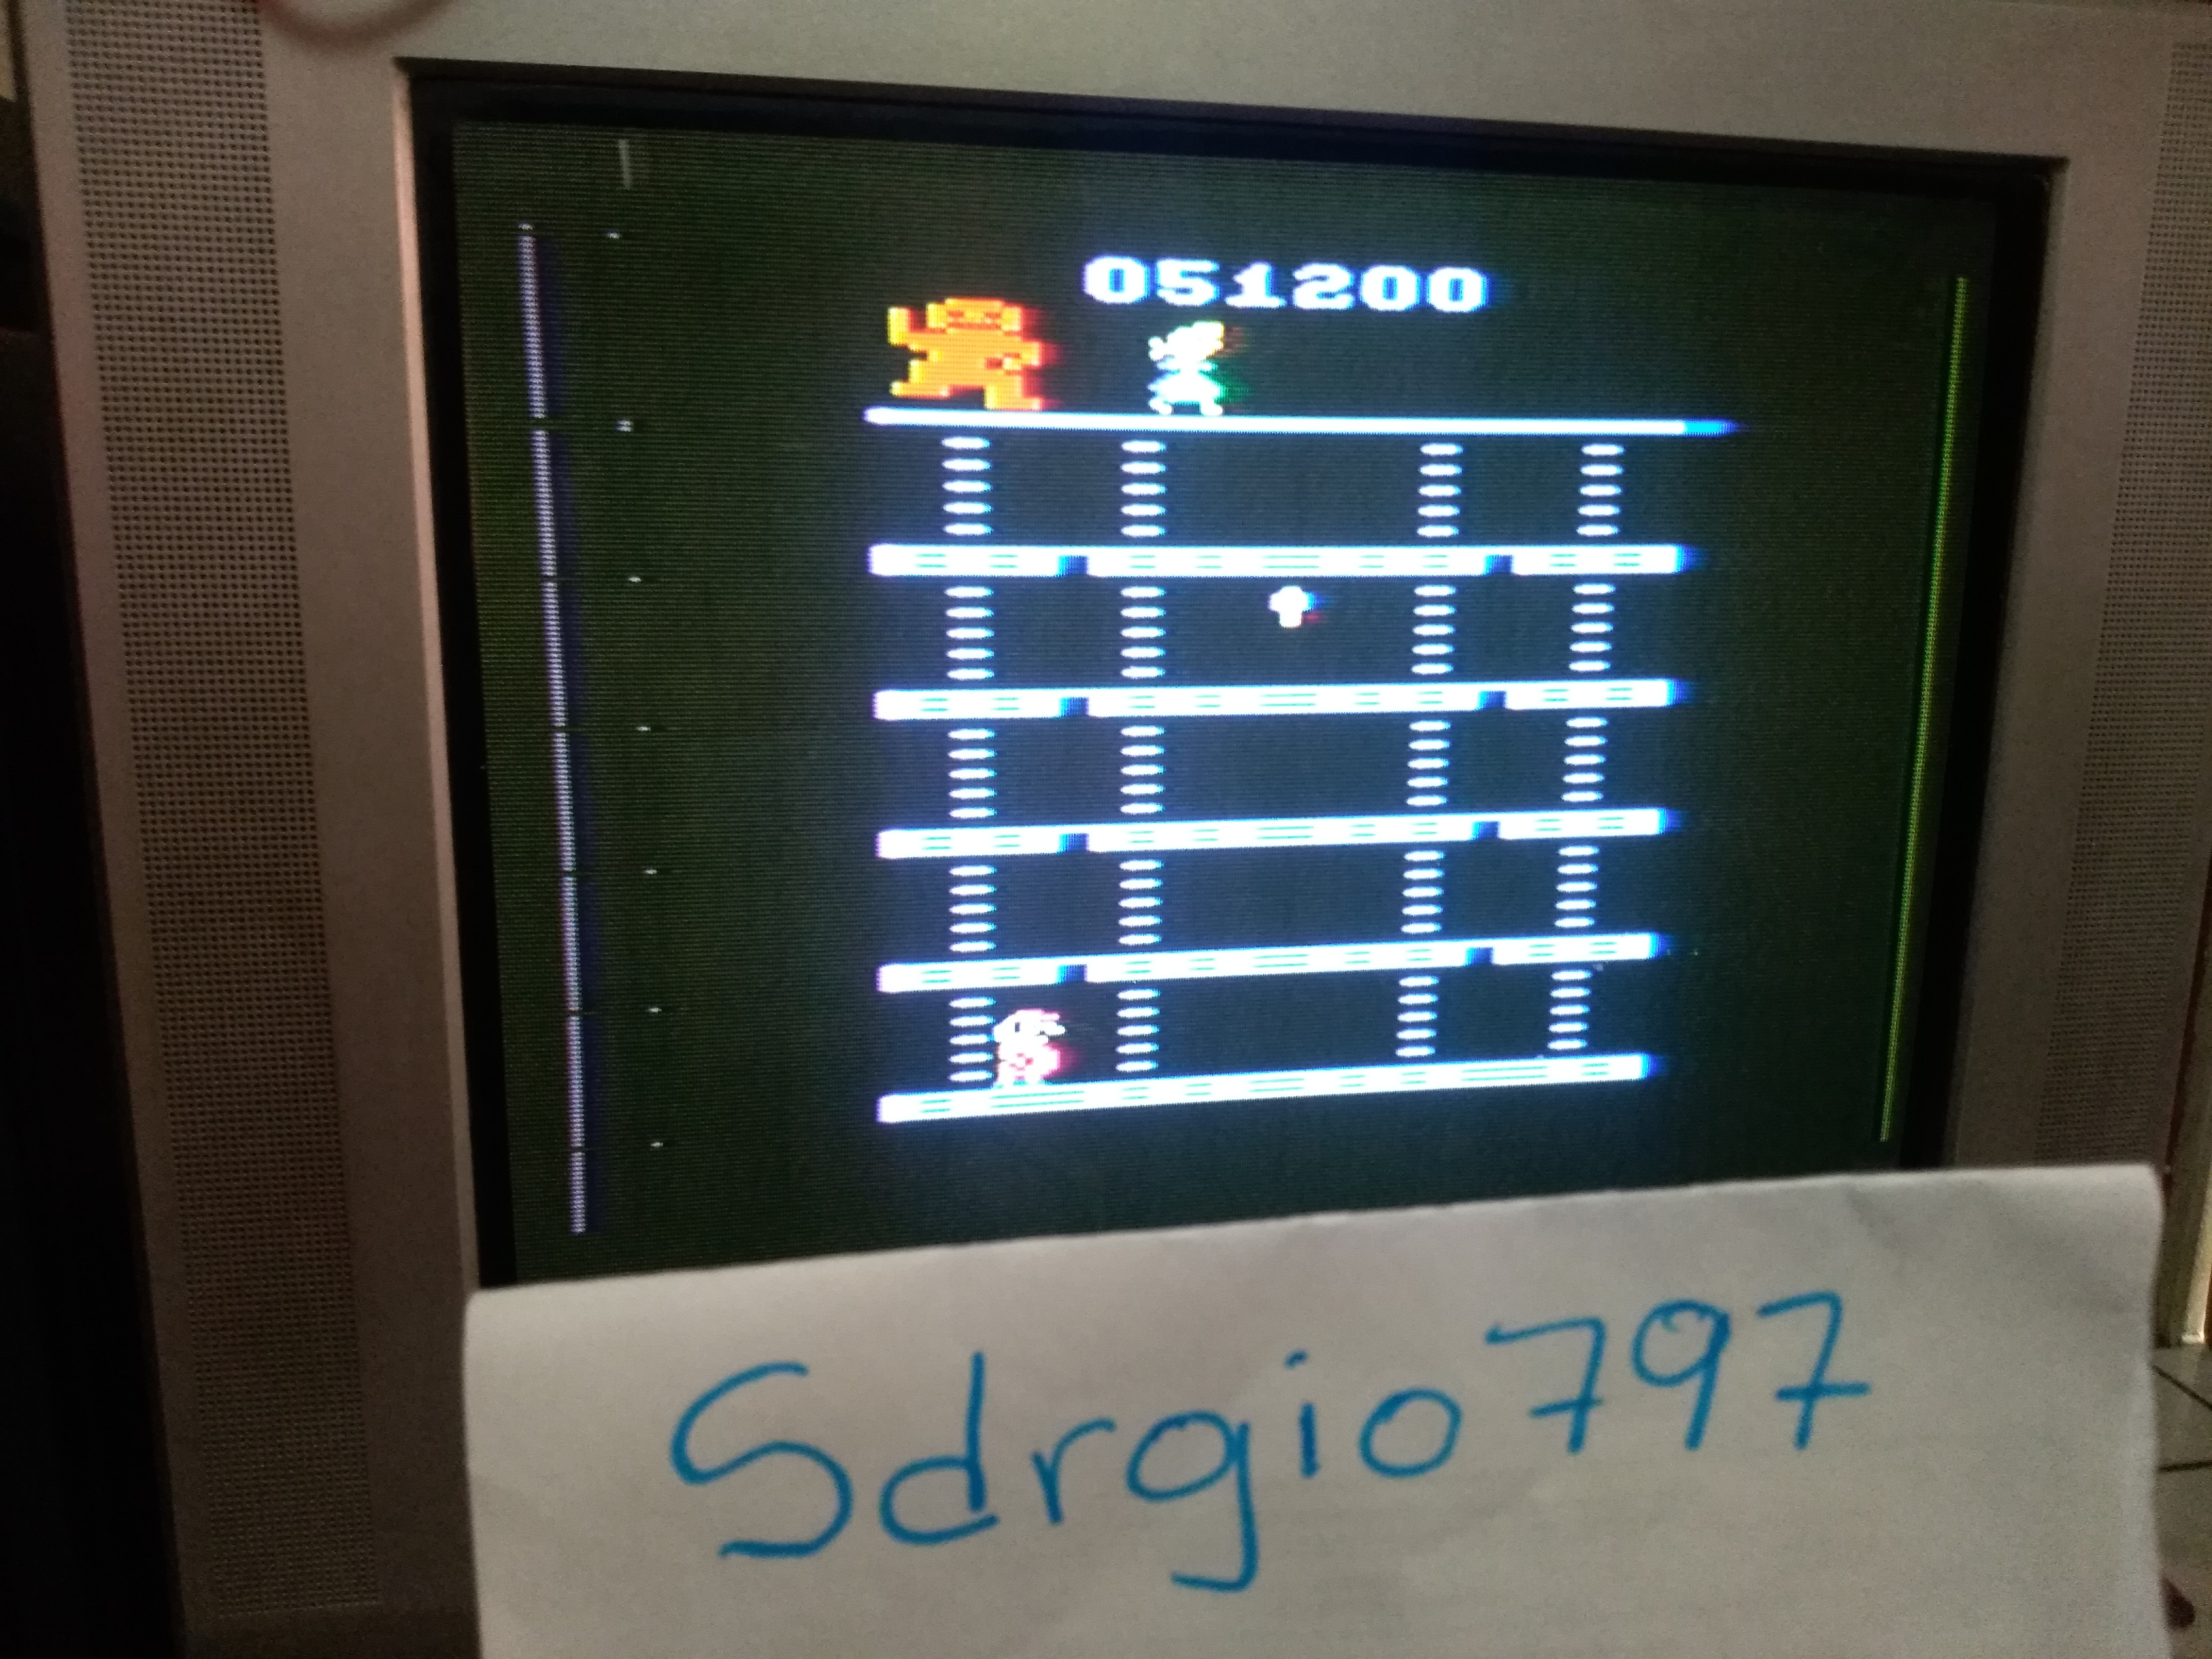 Donkey Kong 51,200 points